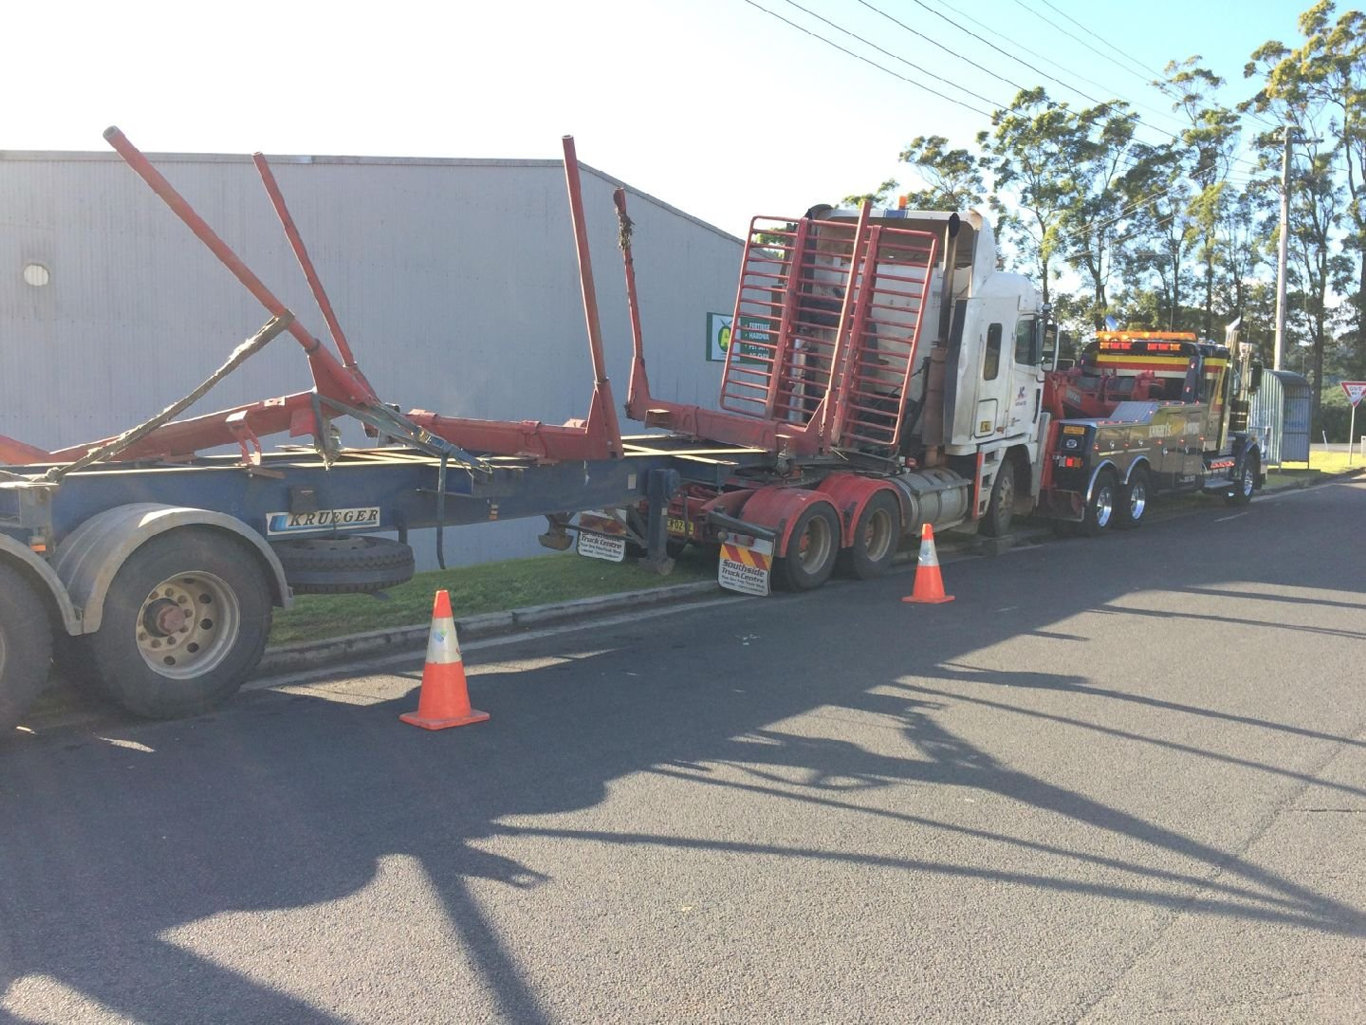 A man has died after a truck crash on the Lismore-Bangalow Rd.